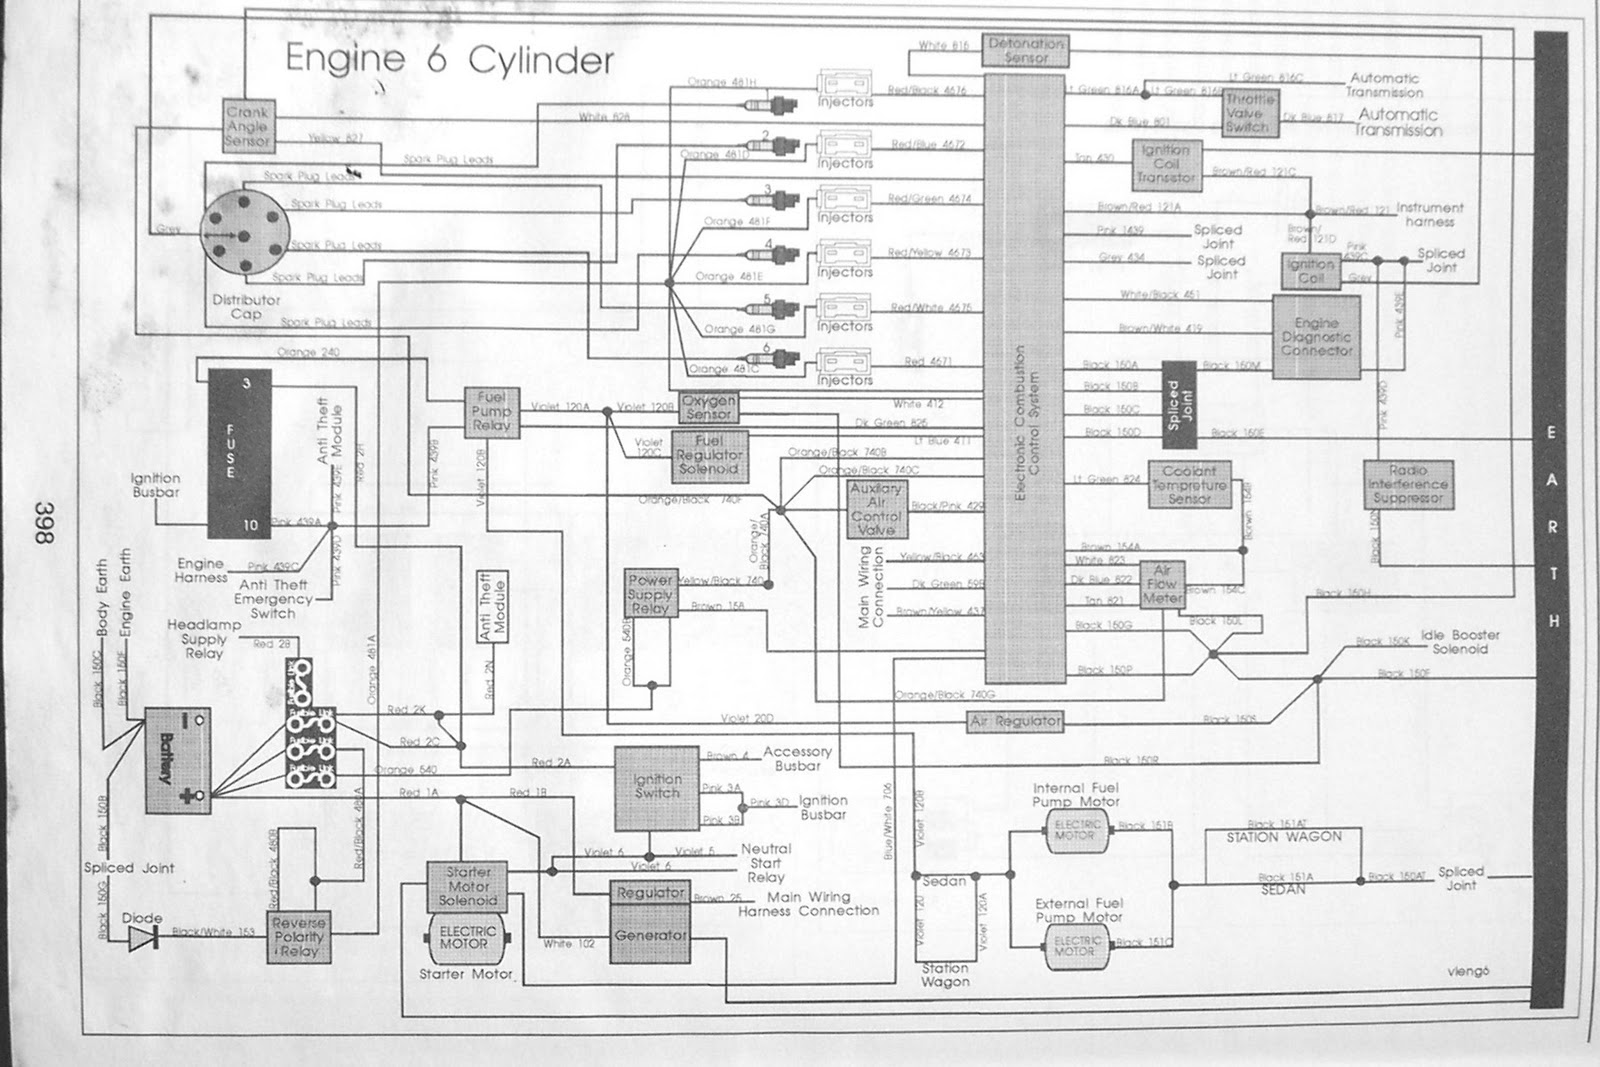 14b vt commodore wiring diagram efcaviation com vt commodore fuel pump wiring diagram at bayanpartner.co